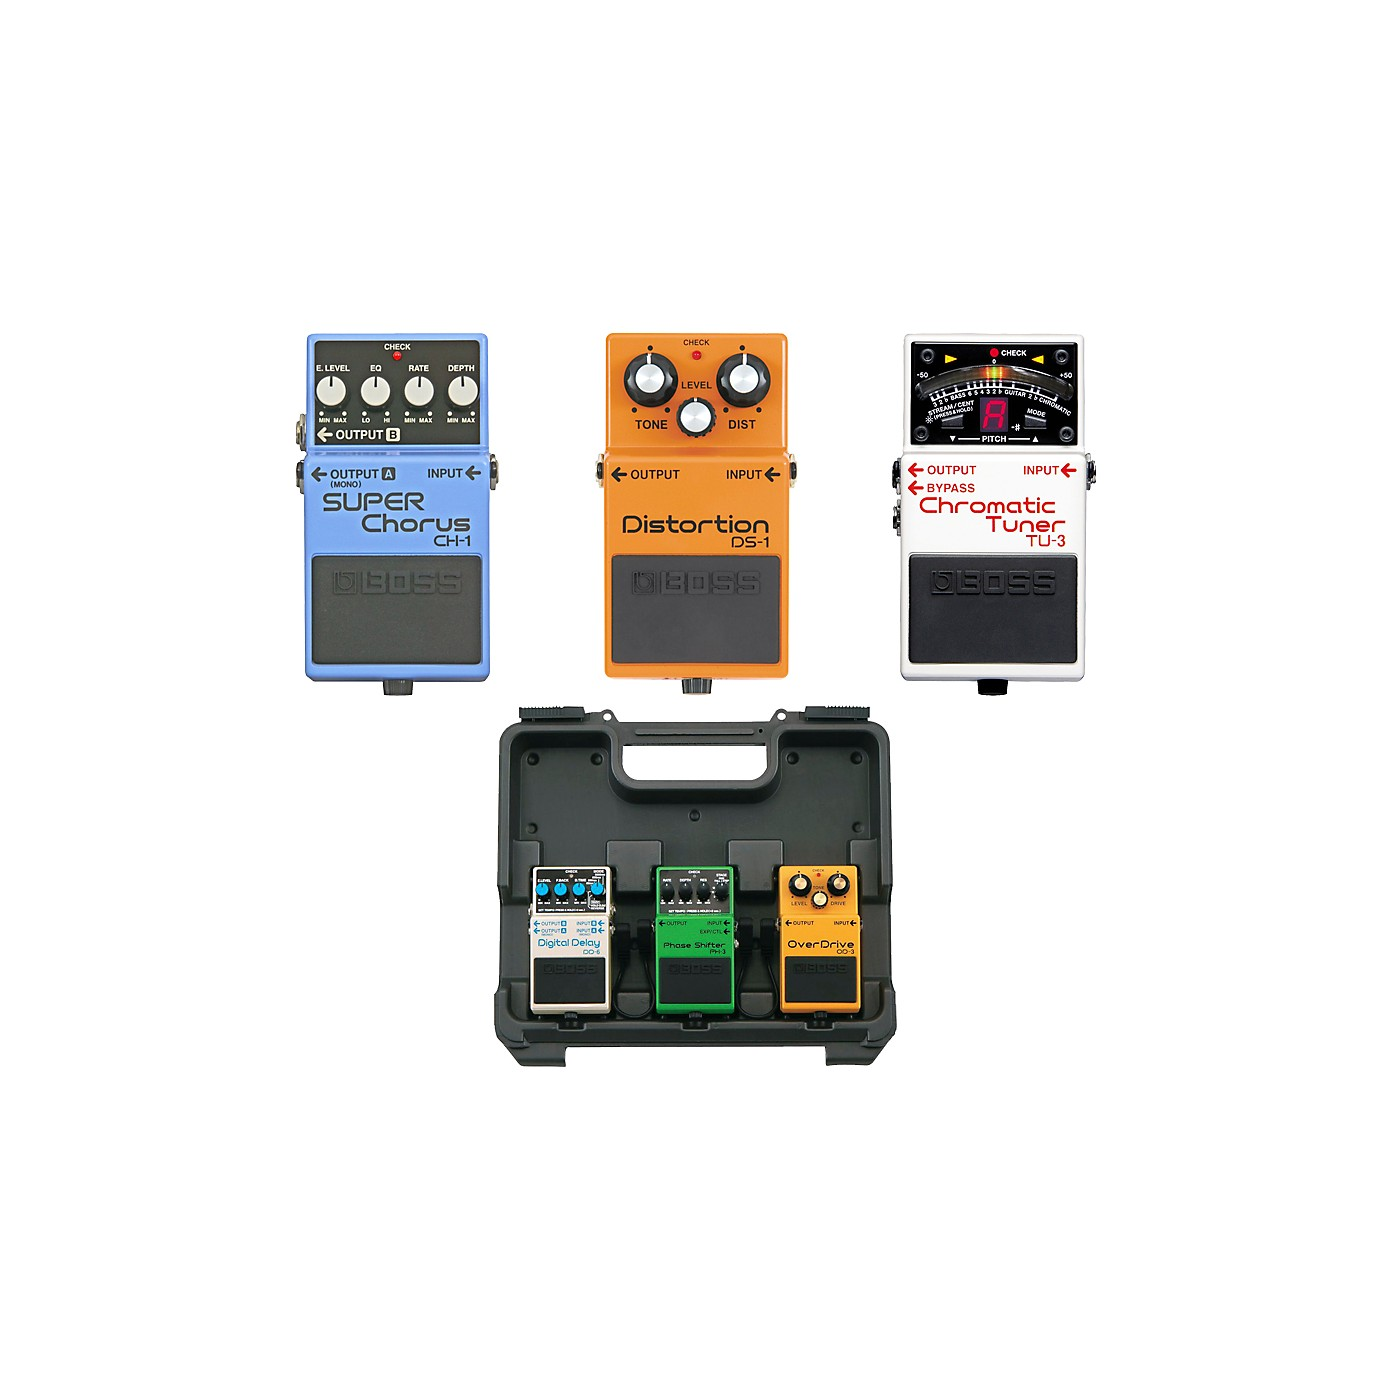 Boss Dave Navarro Pedal Pack (CH-1, TU-3, DS-1) with Free BCB30 Pedal Board thumbnail